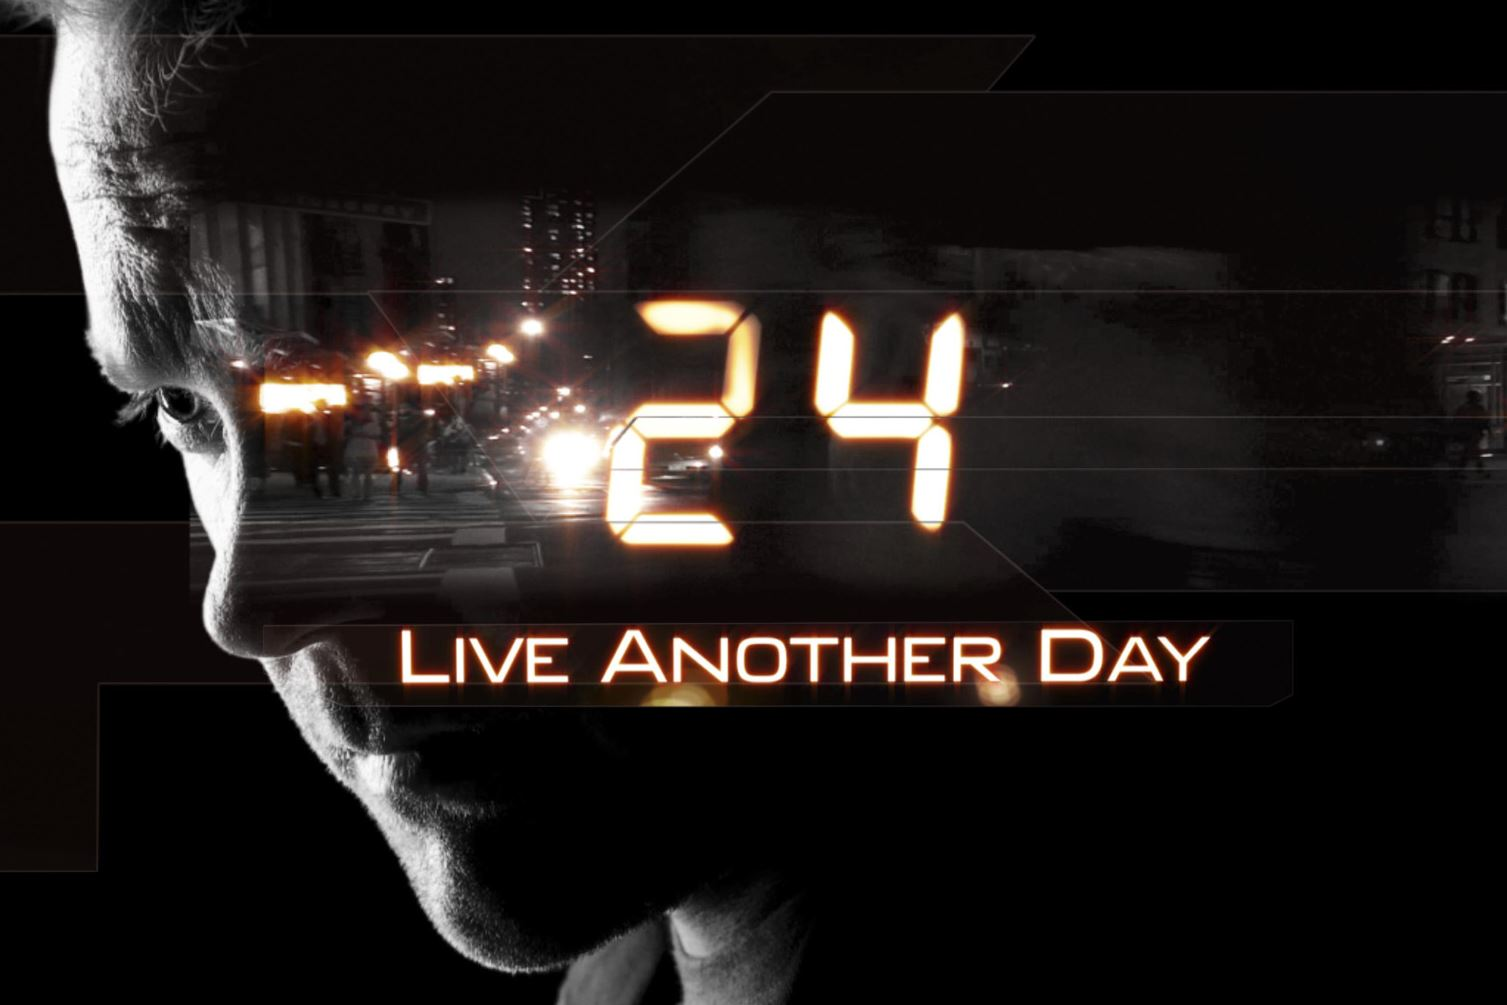 Dalia Gellert - FILM AND DRAMA - 24: LIVE ANOTHER DAY